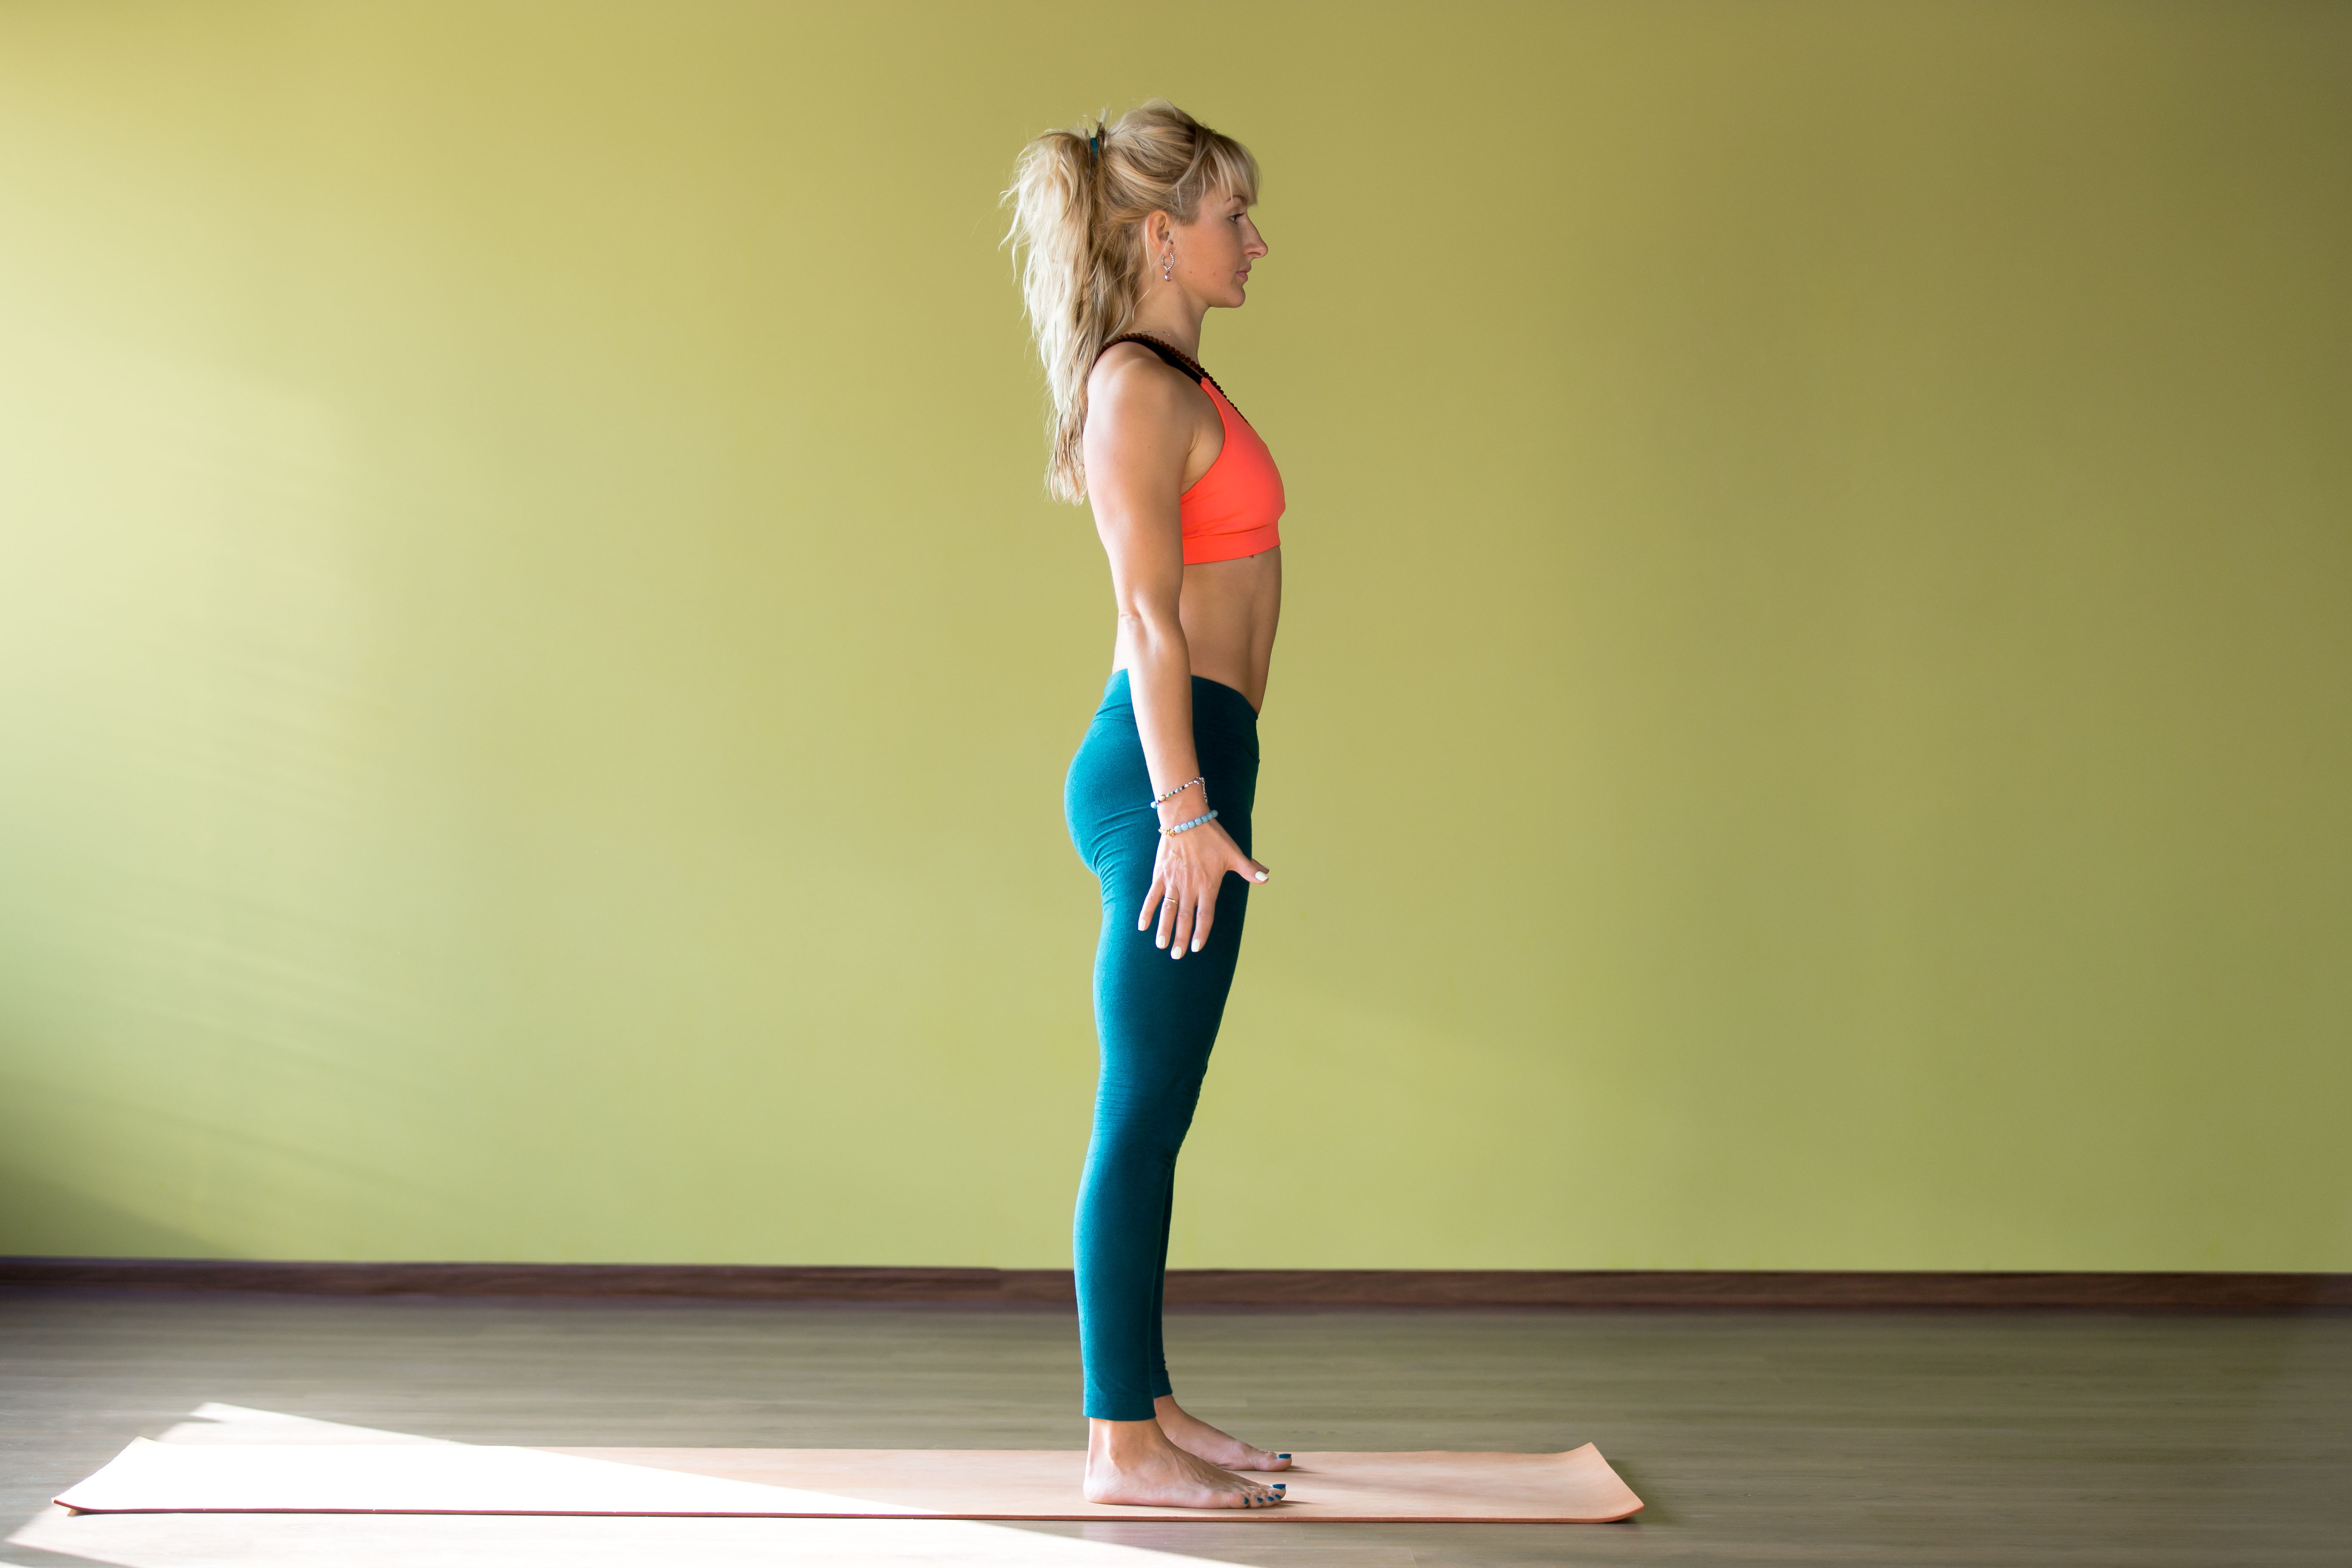 Basic Leg and Hip Alignment for Posture and Exercise